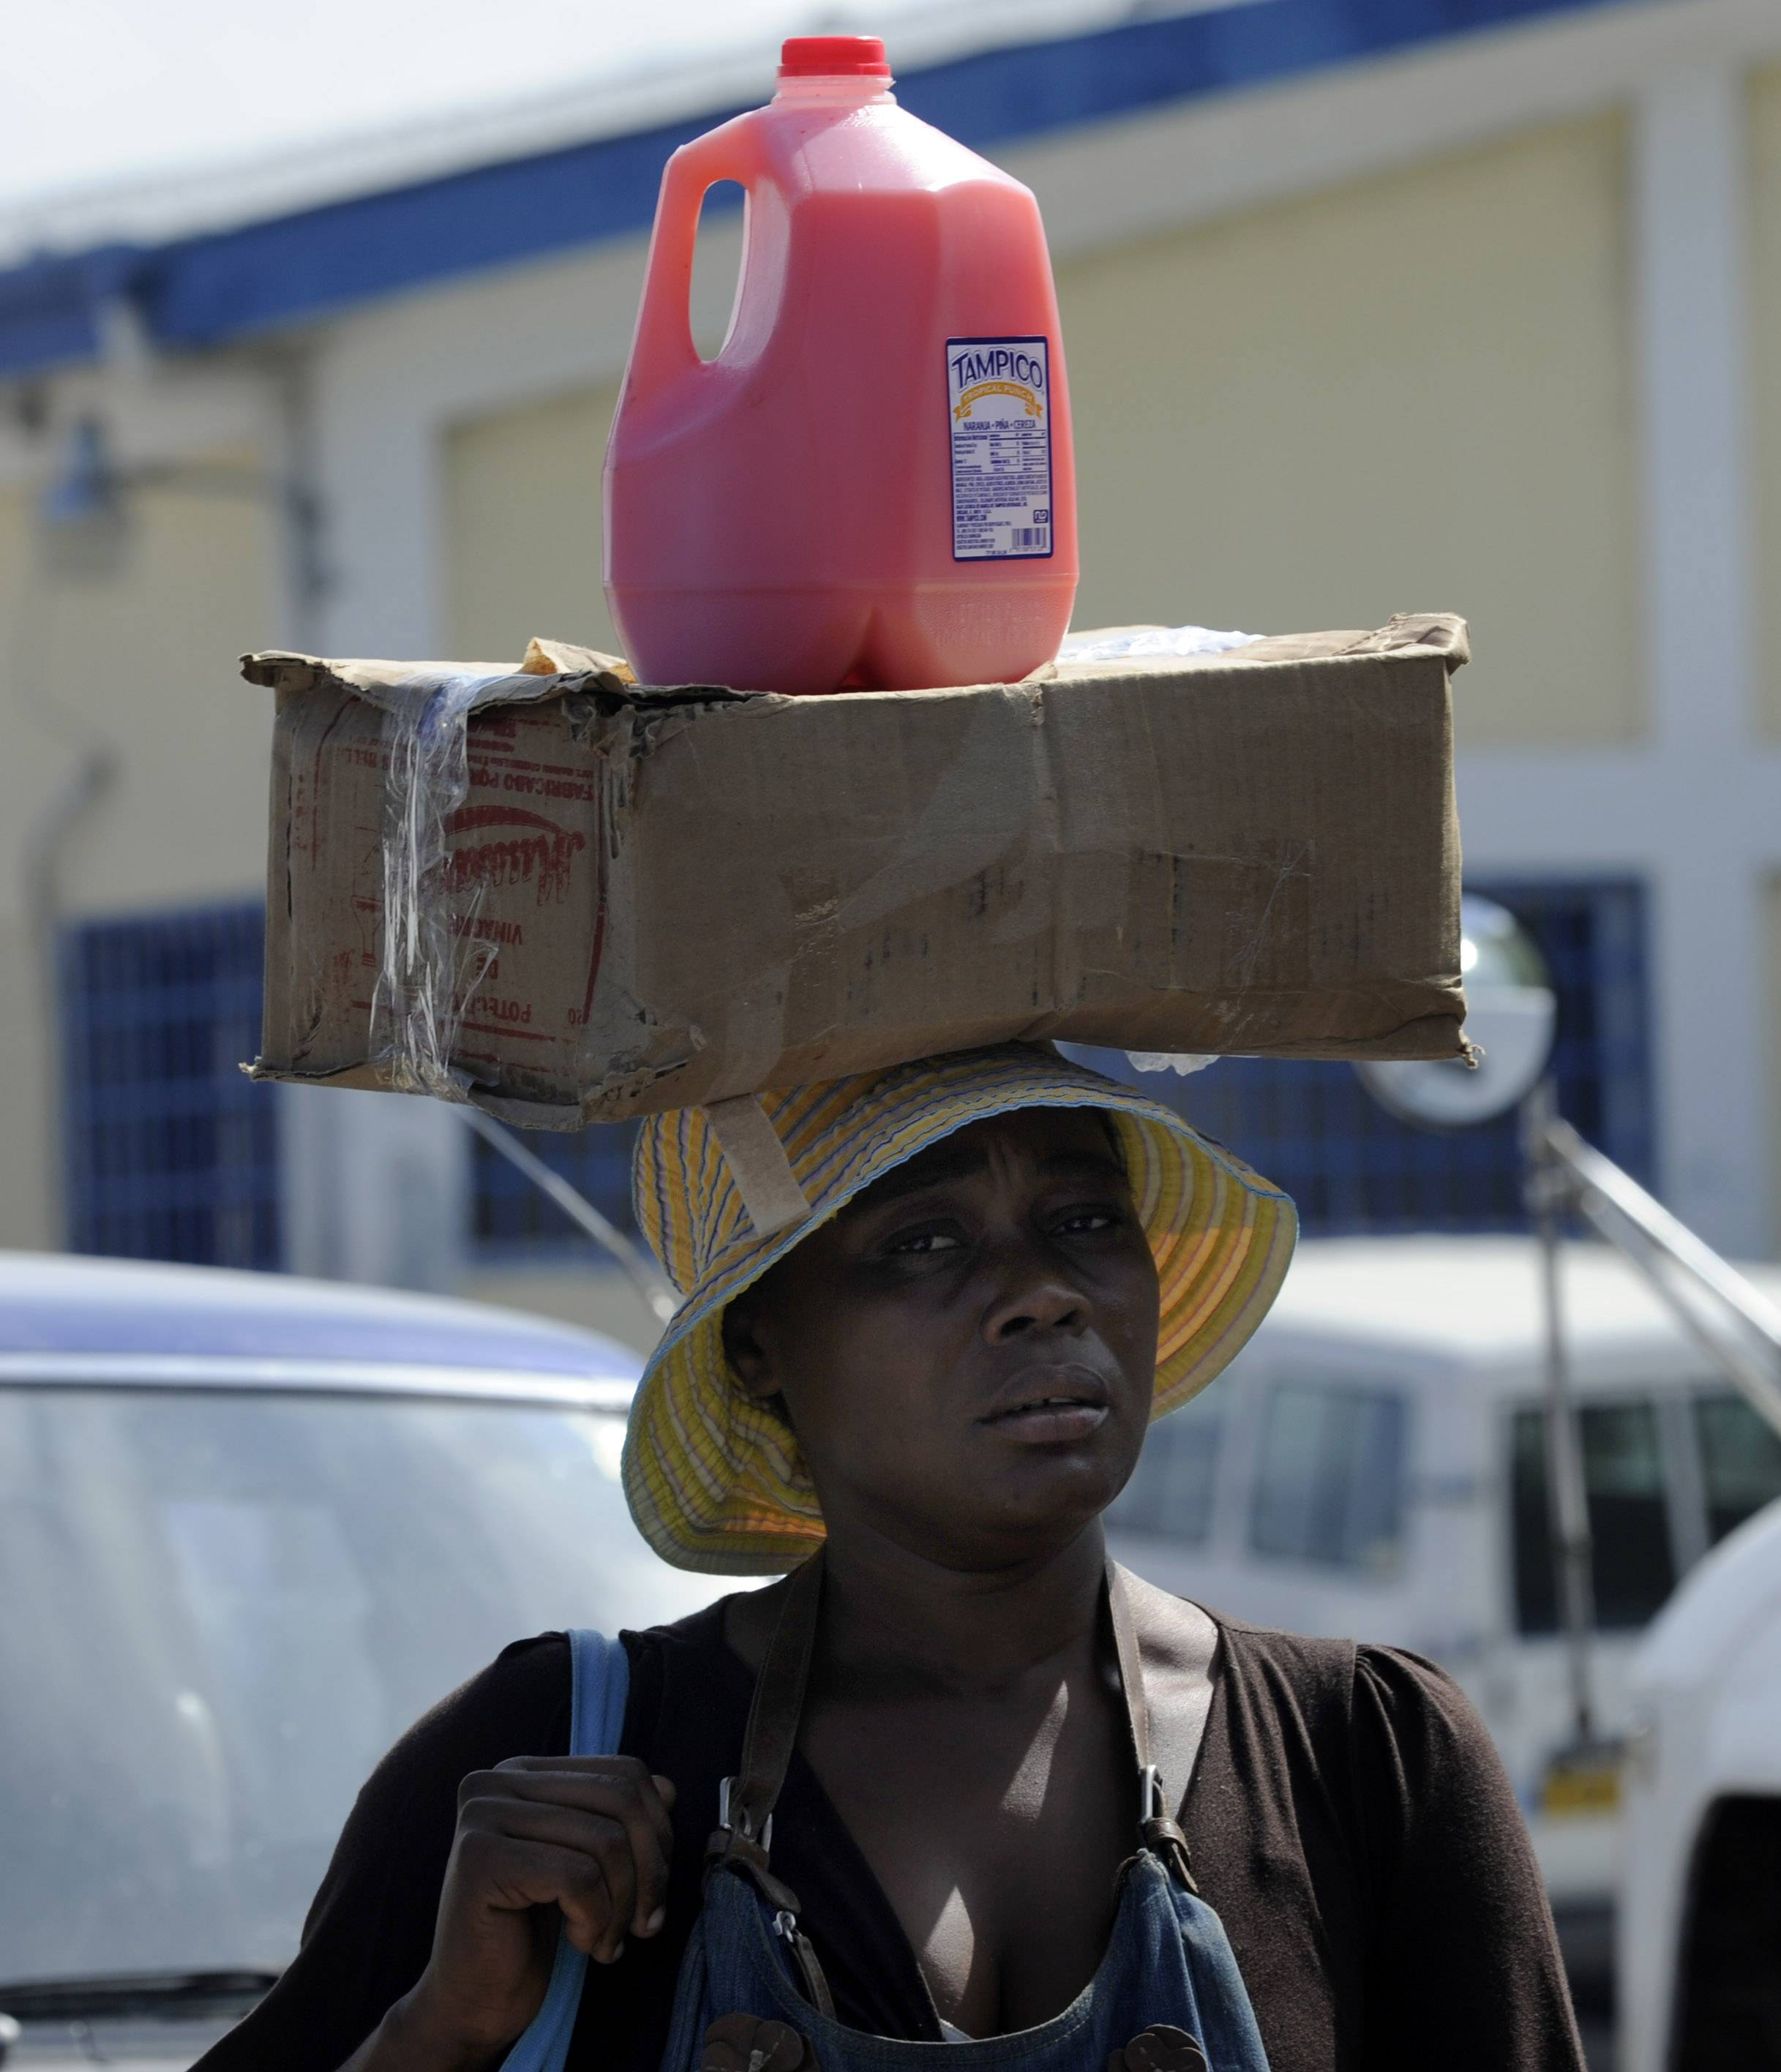 A Haitian woman carries her supplies on market day at the border between the Dominican Republic and Haiti.